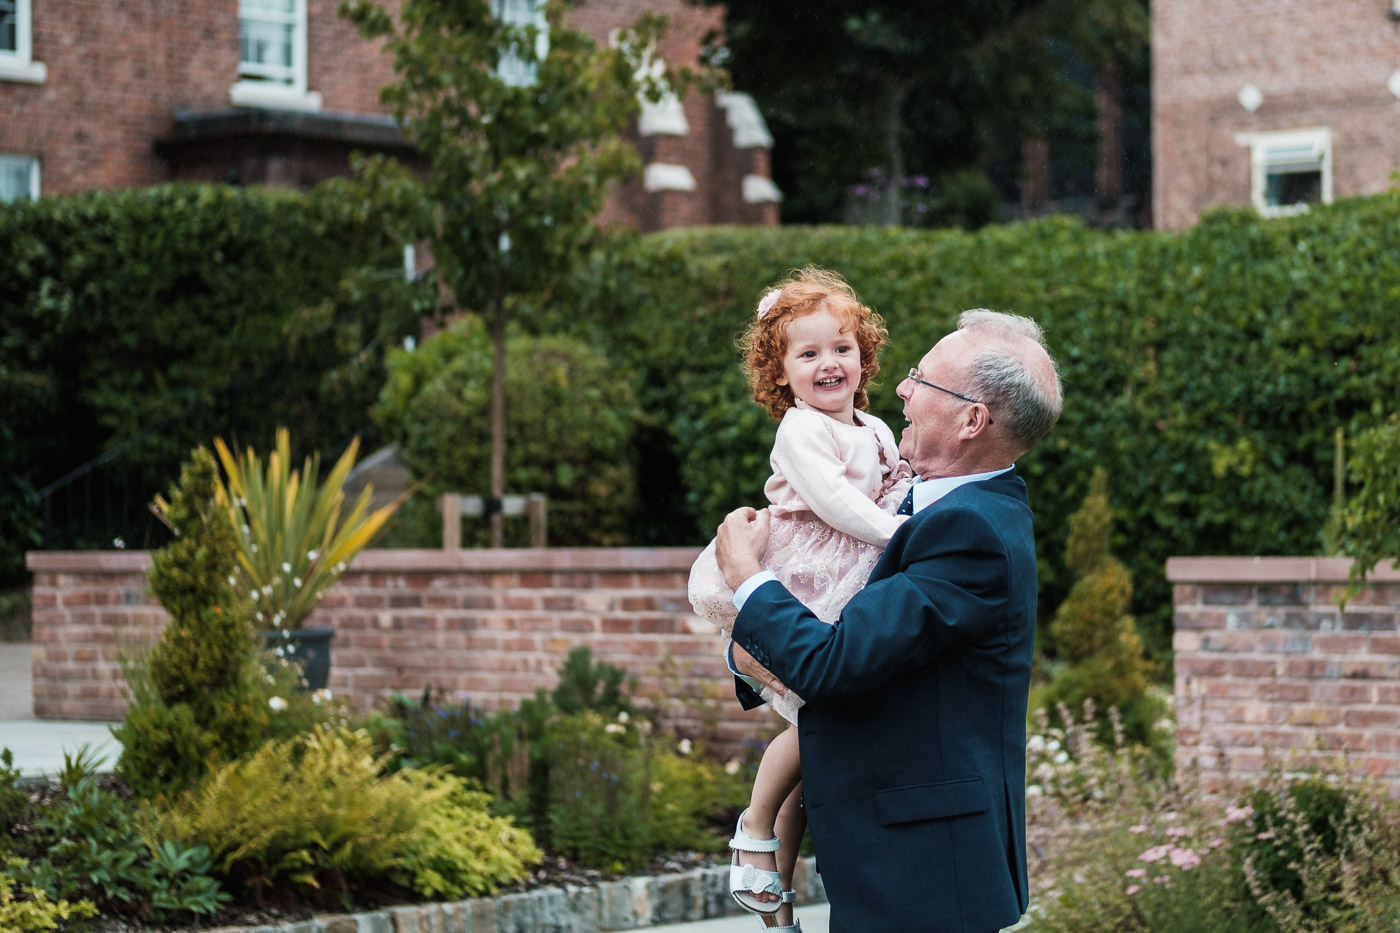 grandad has fun with his granddaughter in the grounds of the old palace in chester at his sons wedding